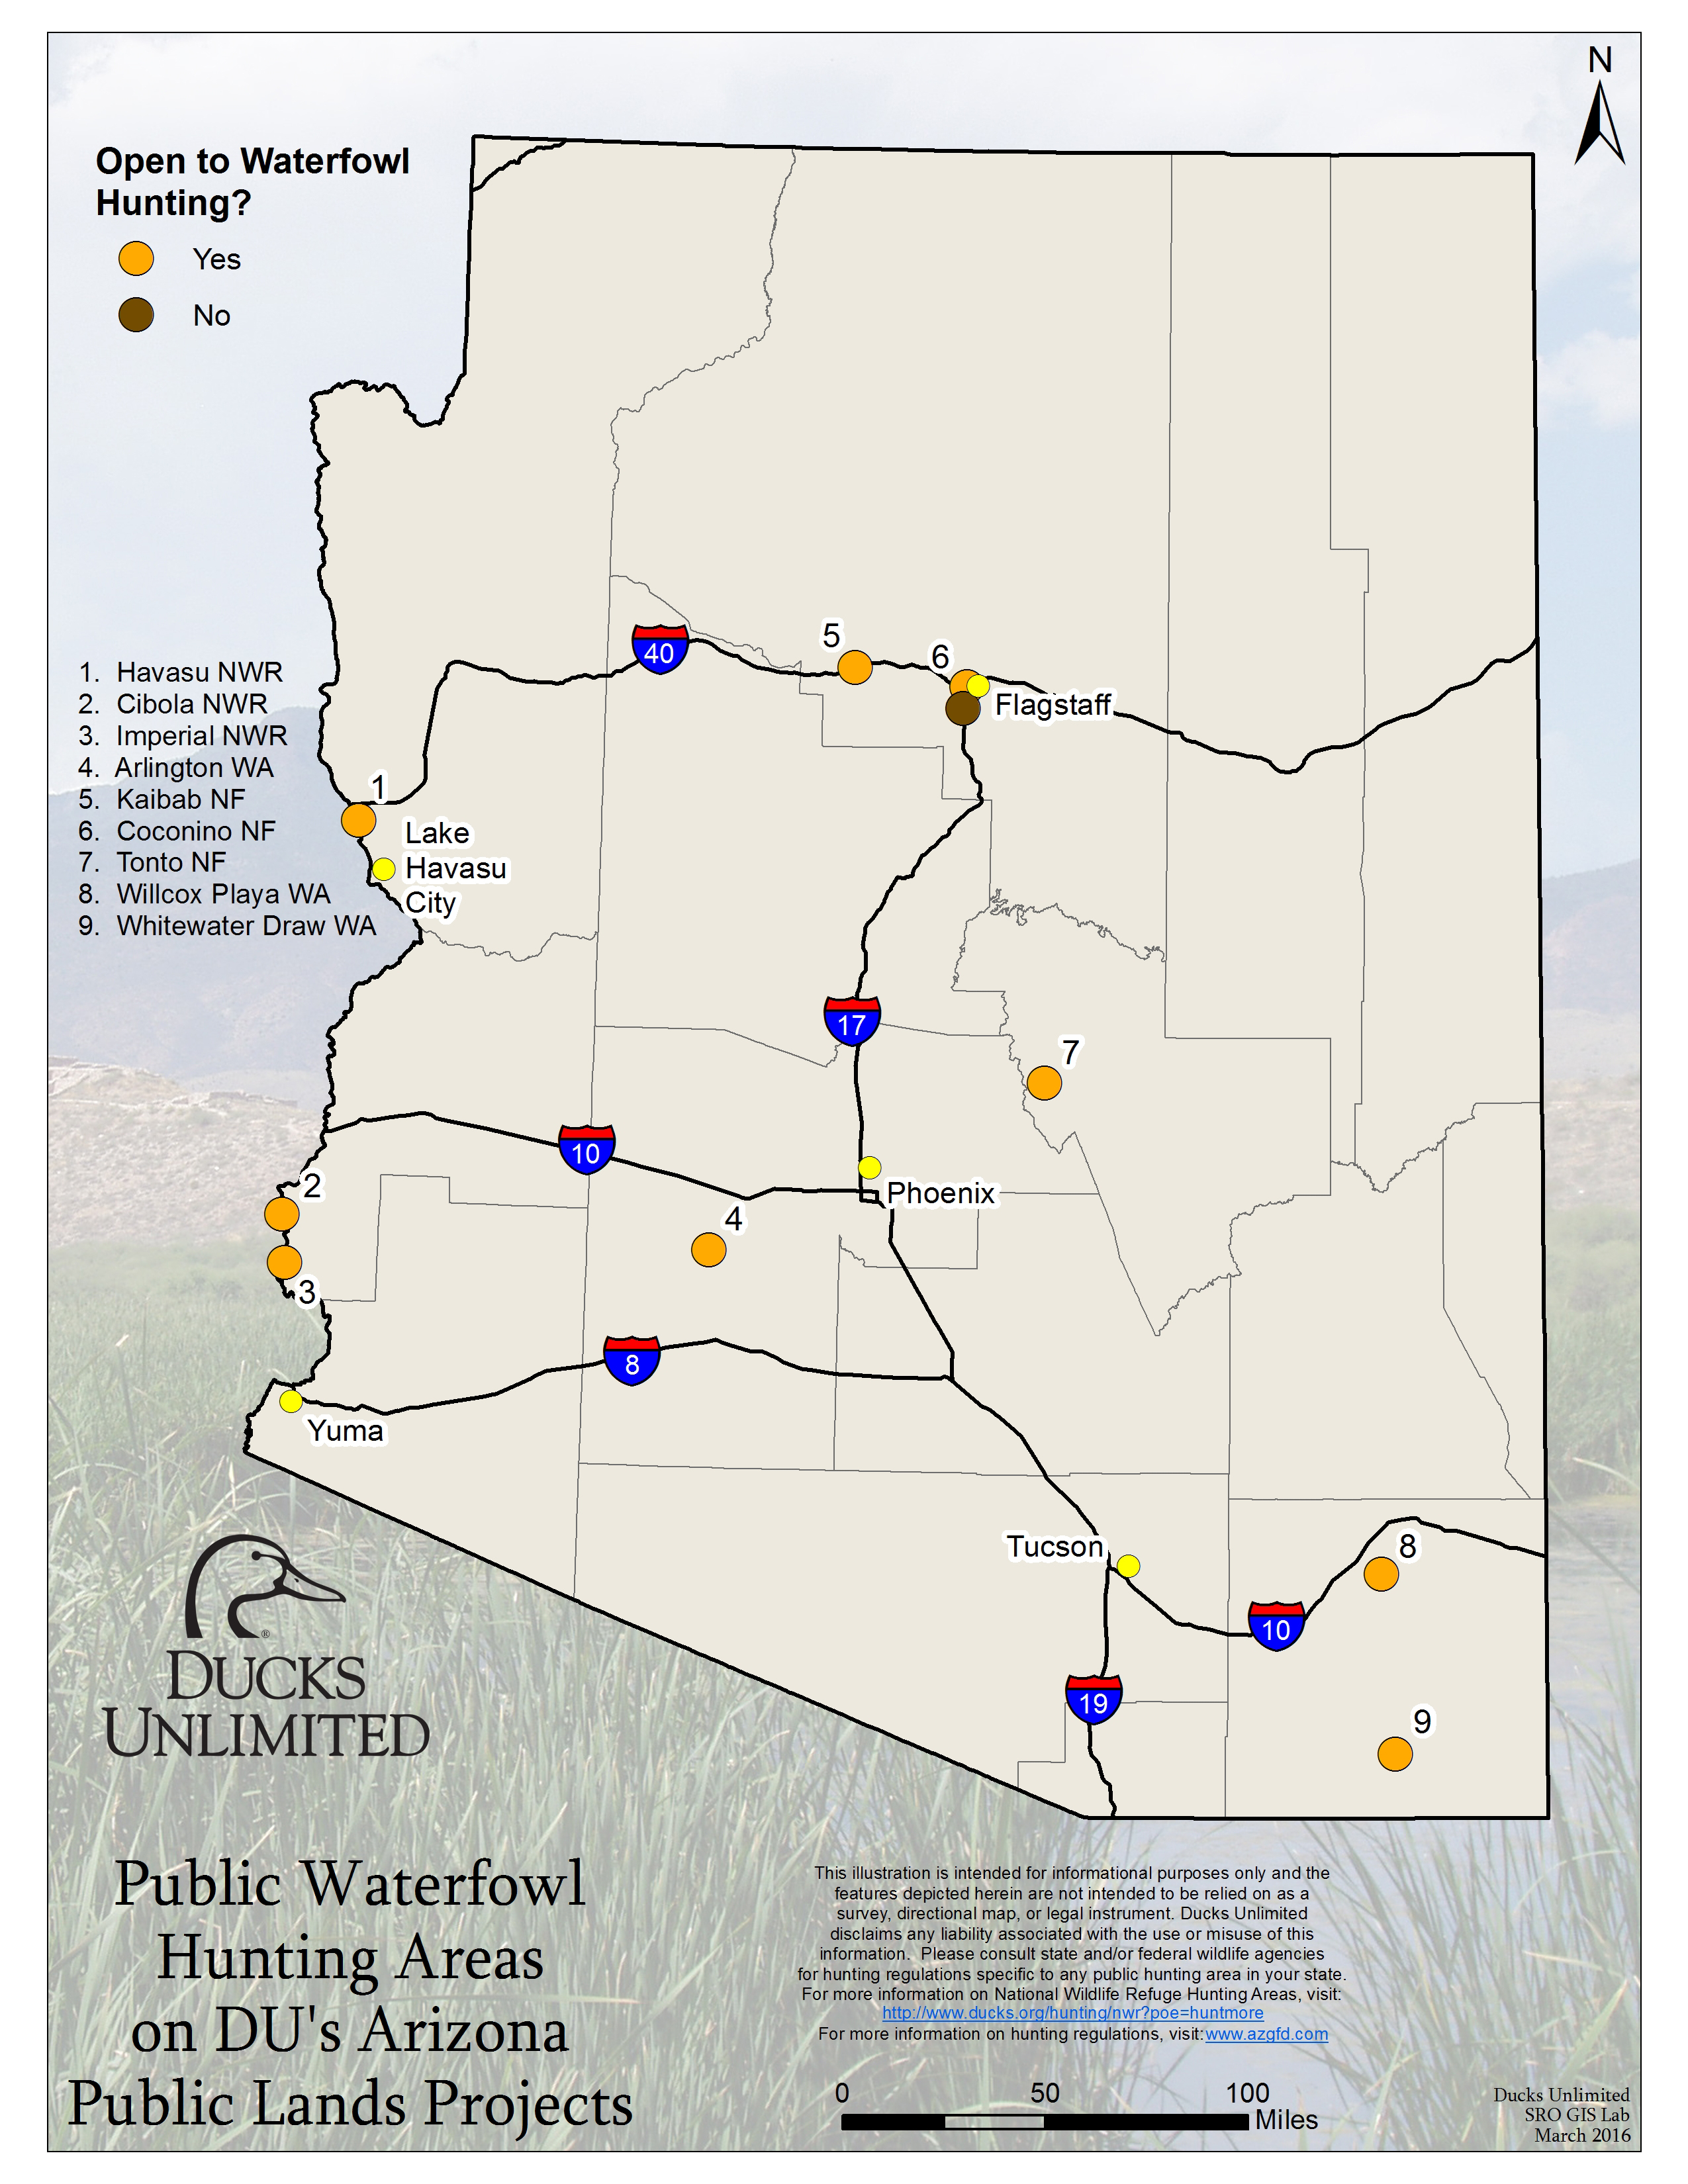 Public Waterfowl Hunting Areas on DU Public Lands Projects